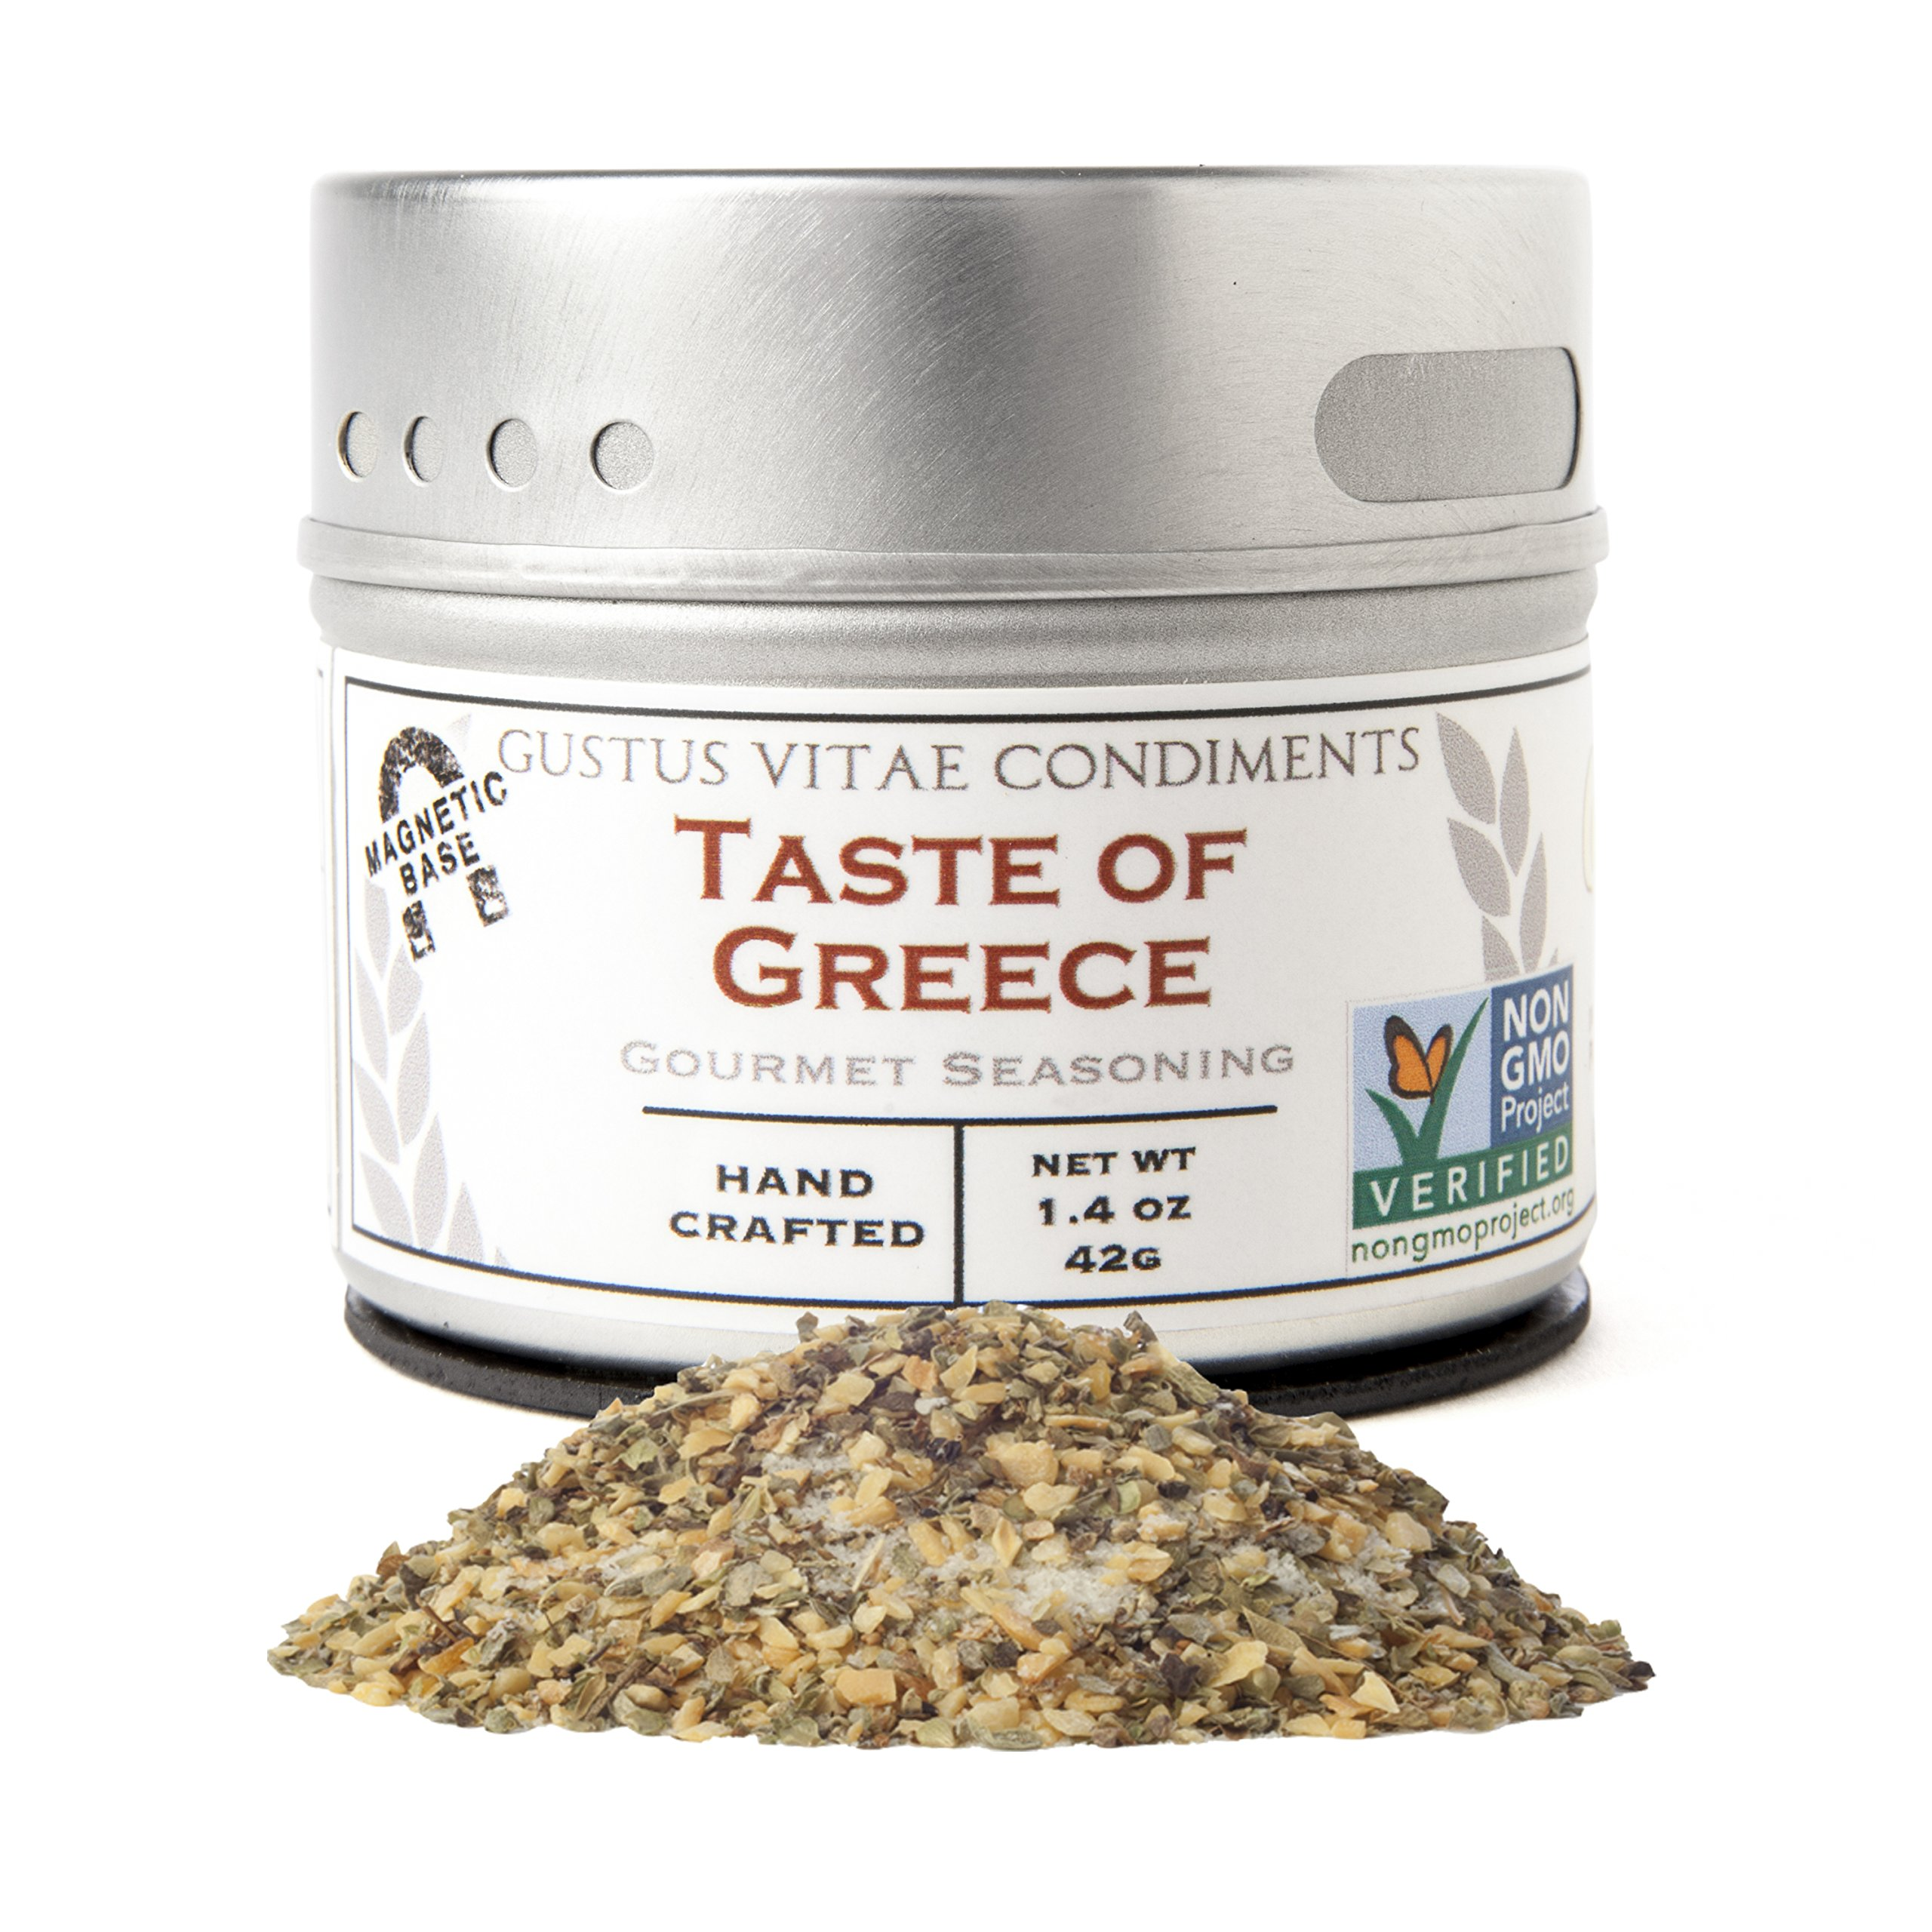 Taste of Greece Seasoning | Non GMO Verified | Magnetic Tin | Small Batch Spice Blend